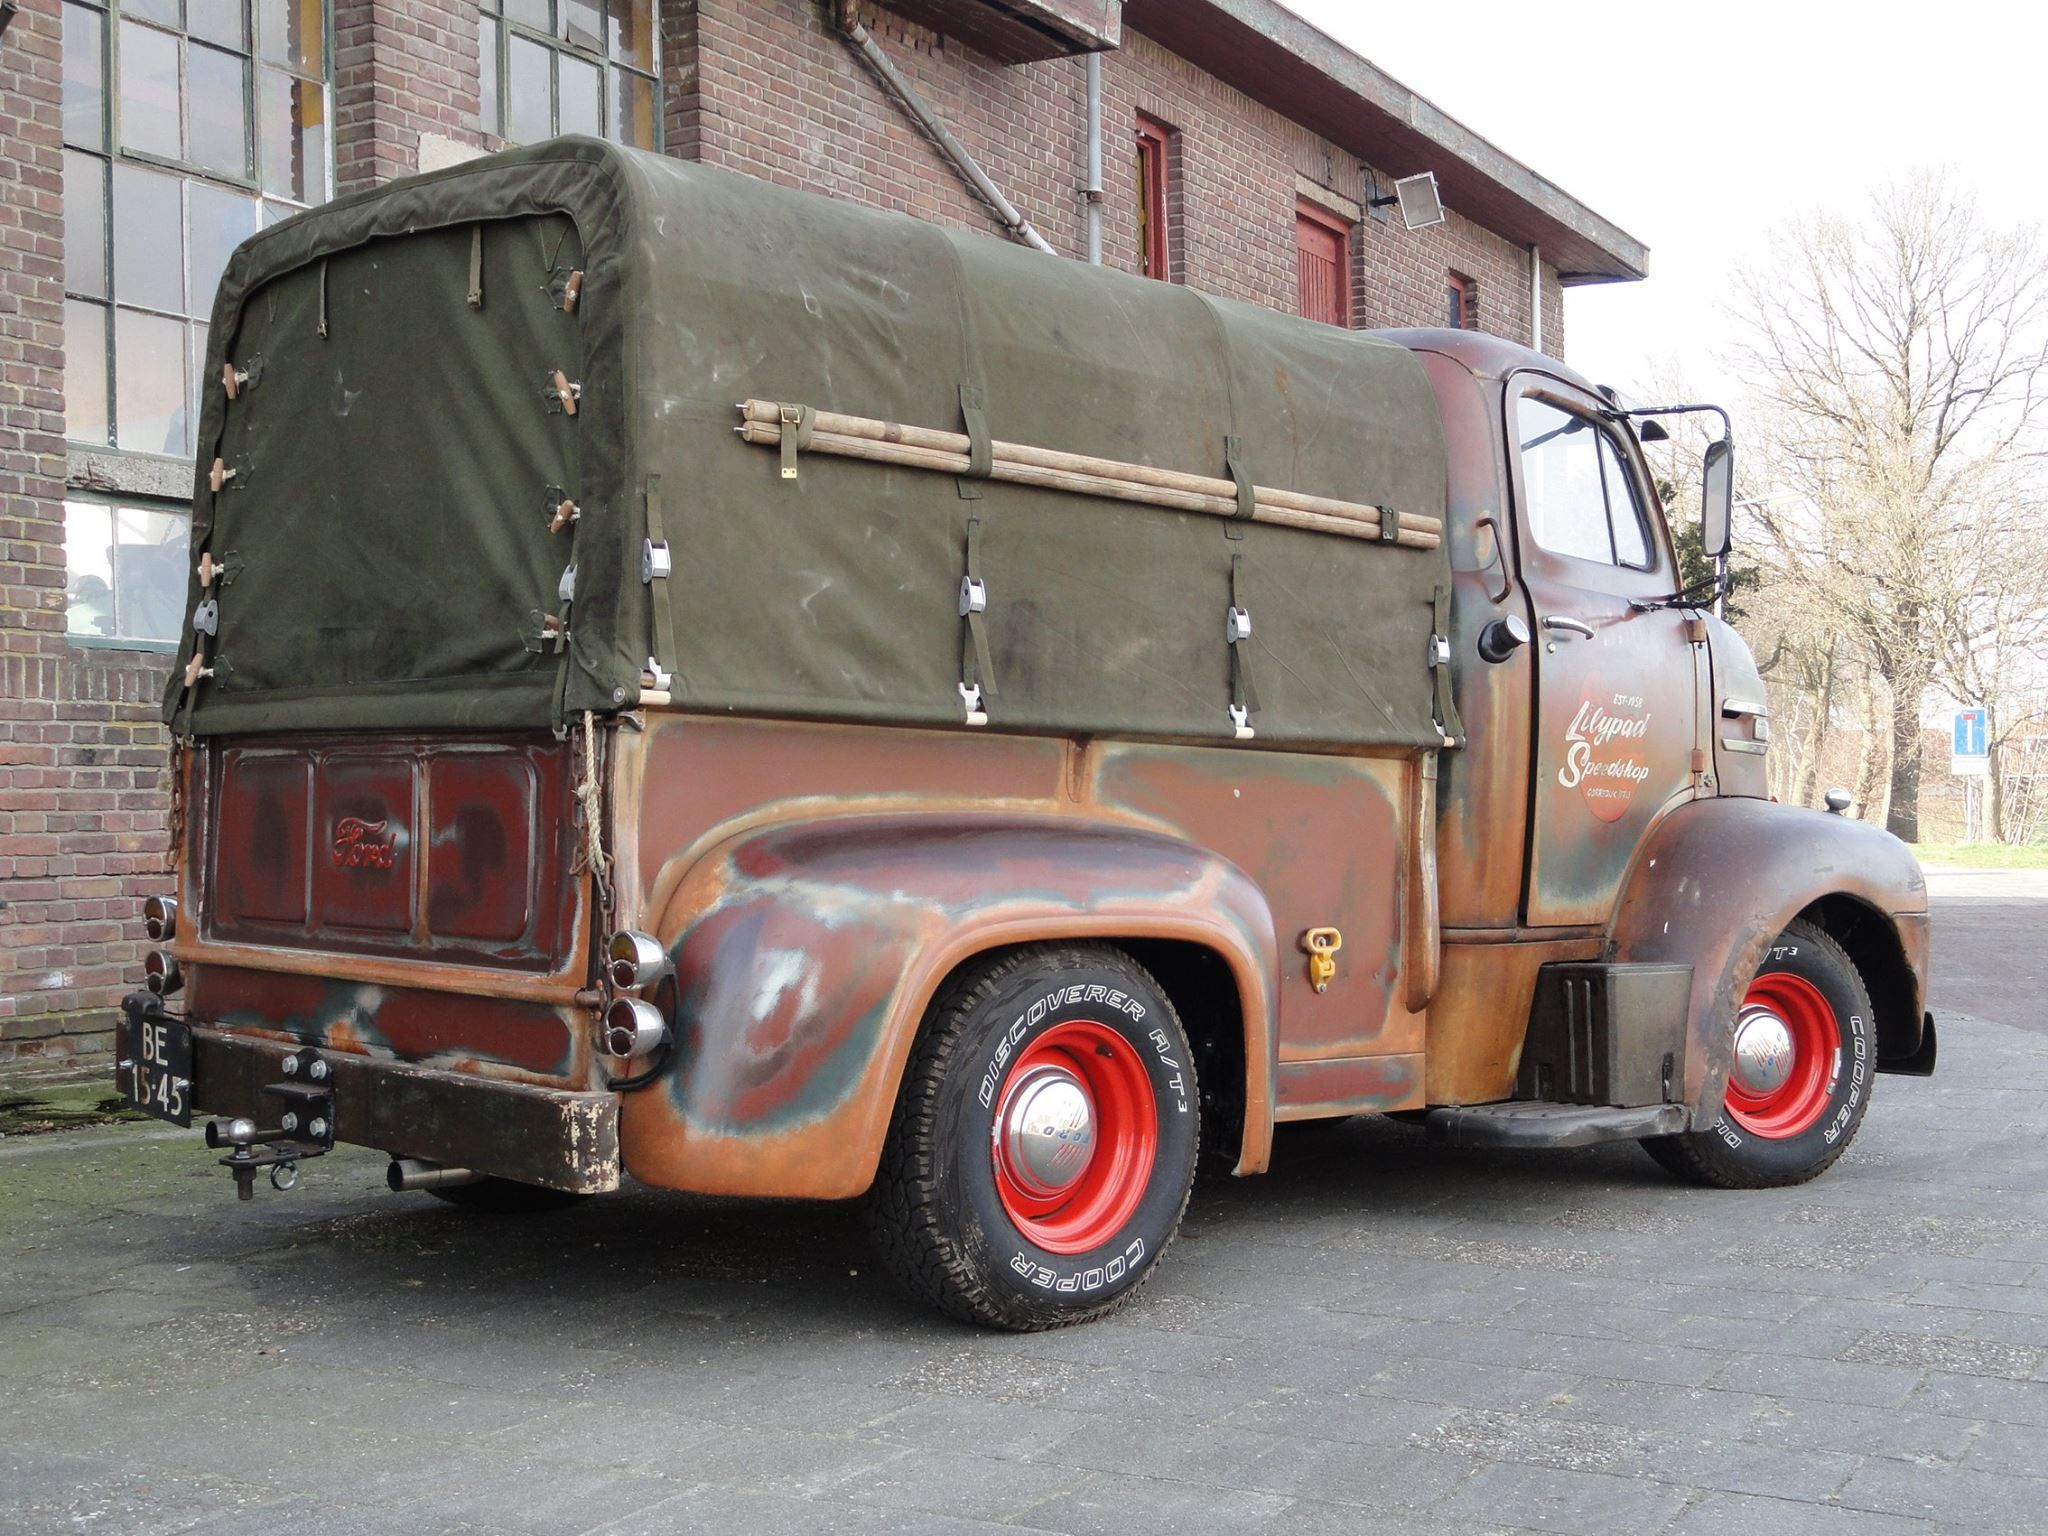 Ford coe with a custom truck bed on the back with a canvas topper pic